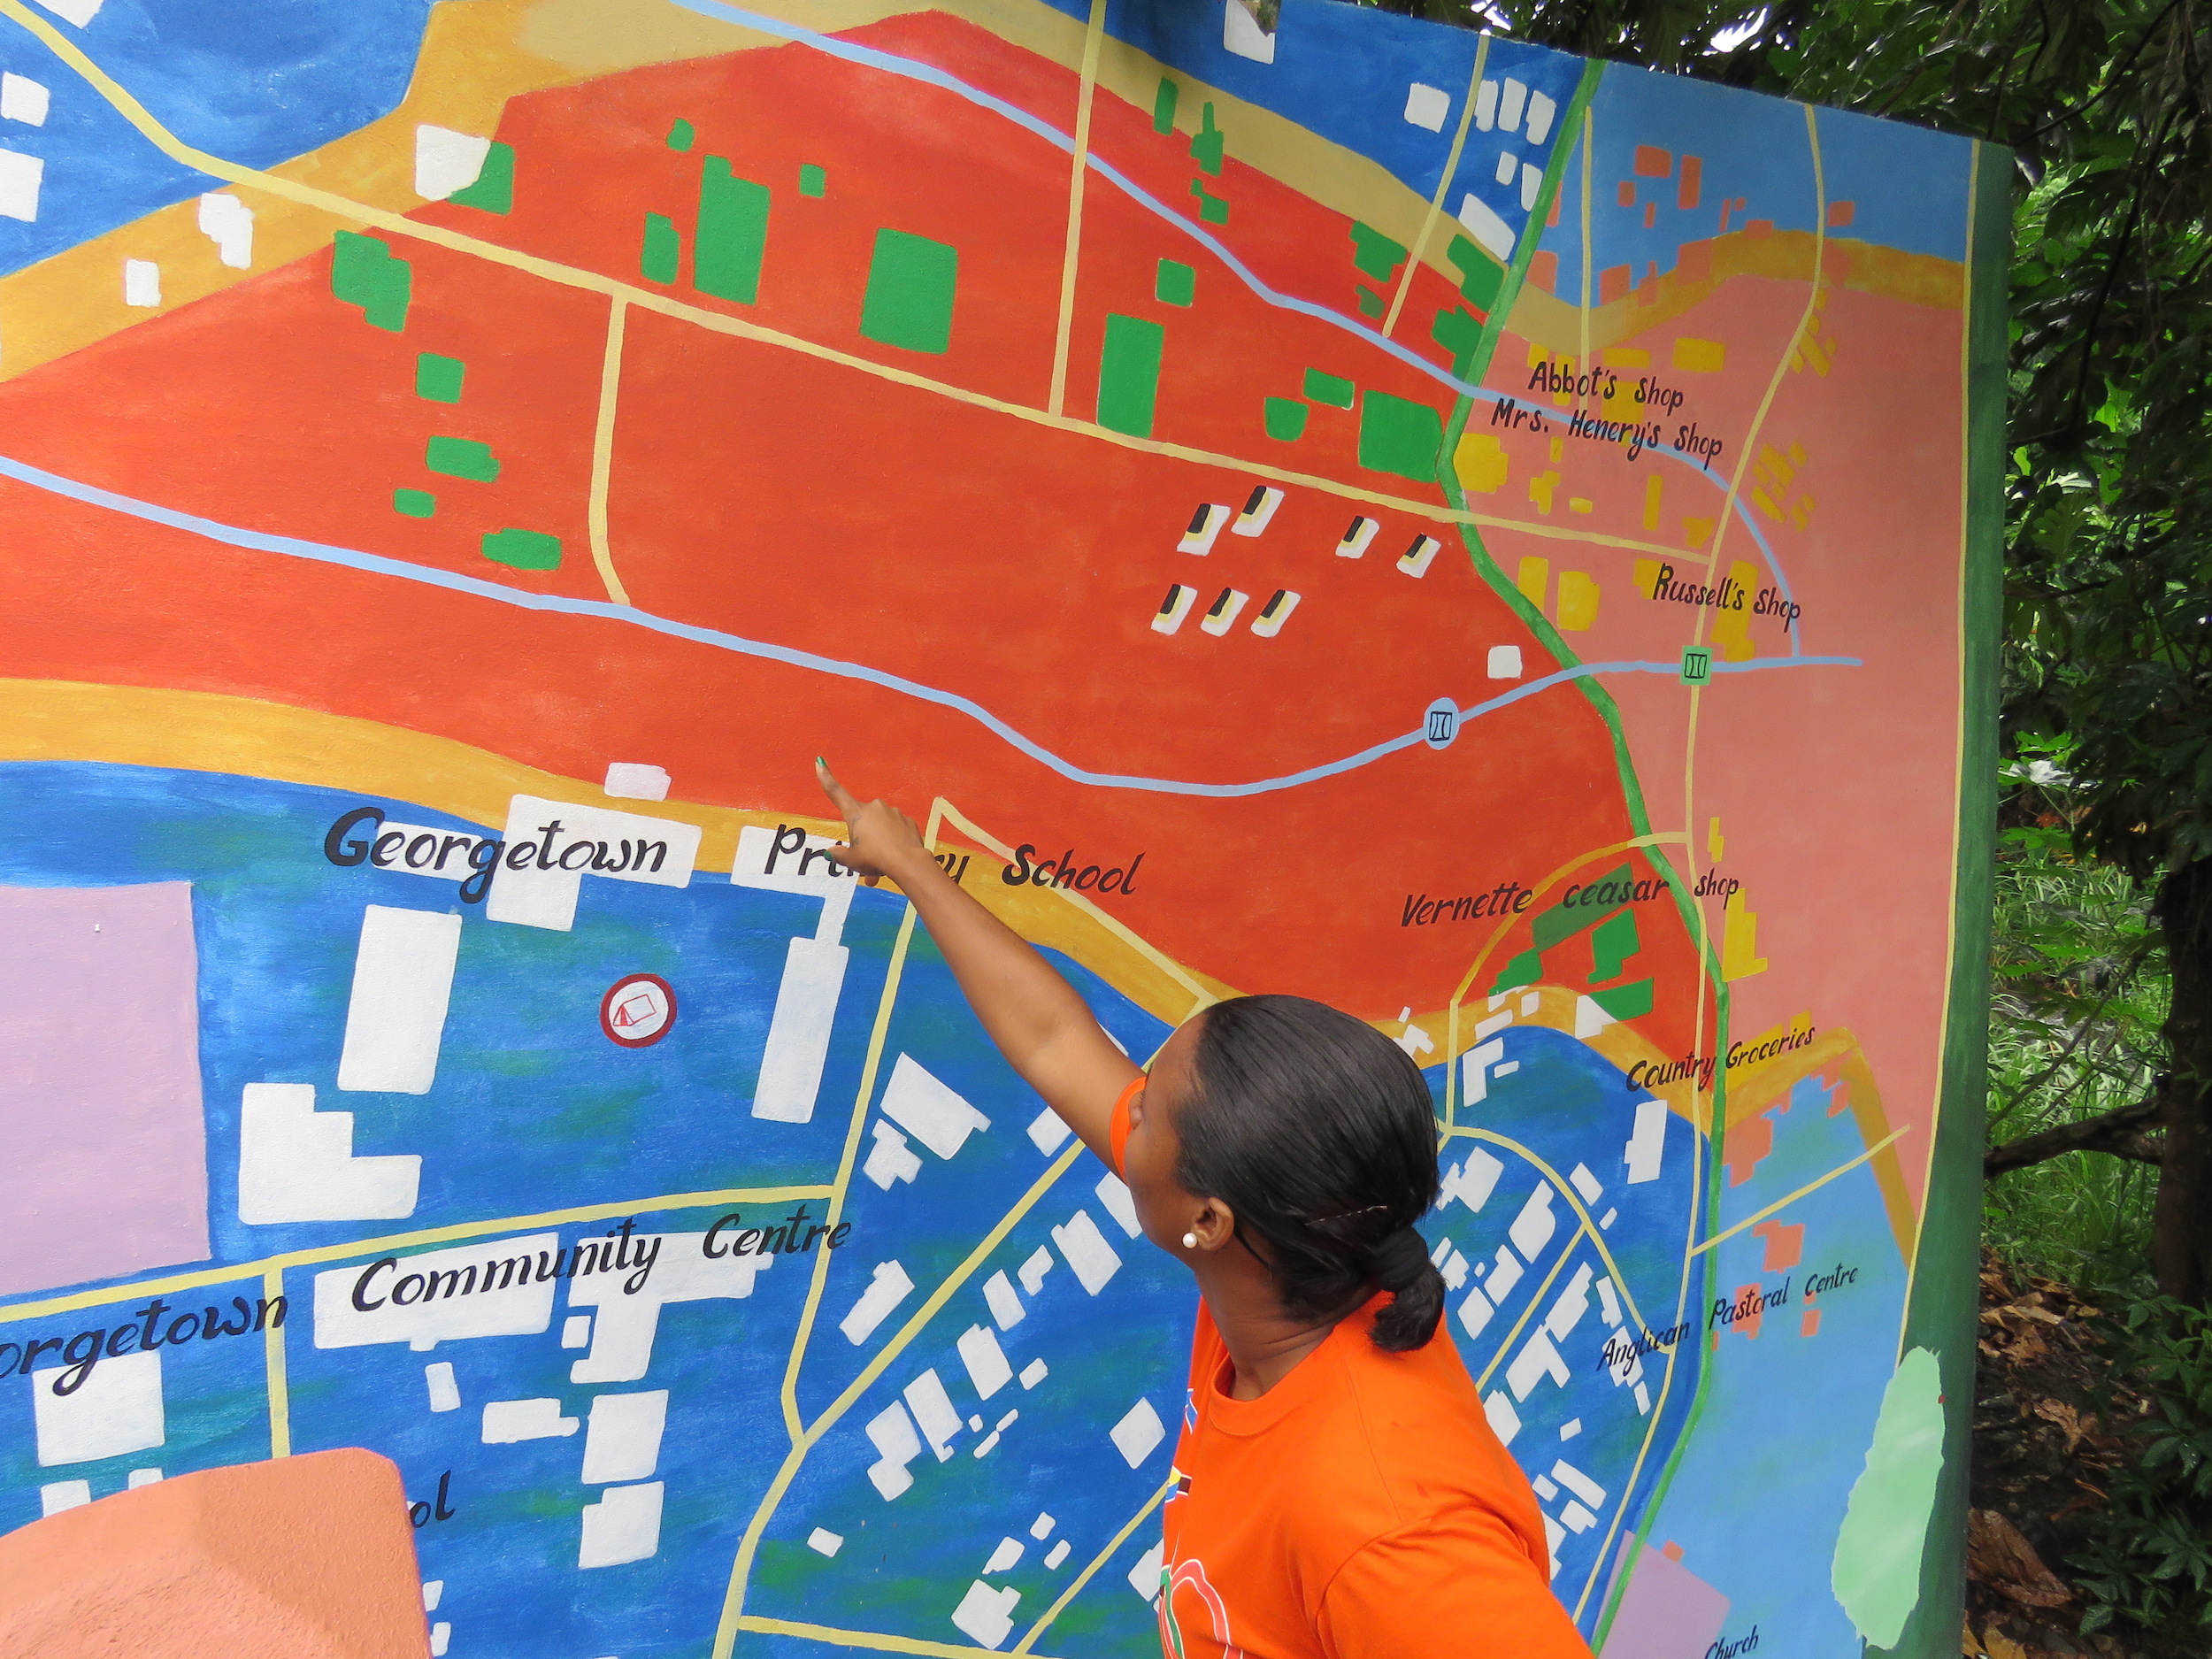 Natalia Bhajan points out vulnerable areas on the hazard map she helped create for her community of Georgetown, St. Vincent.